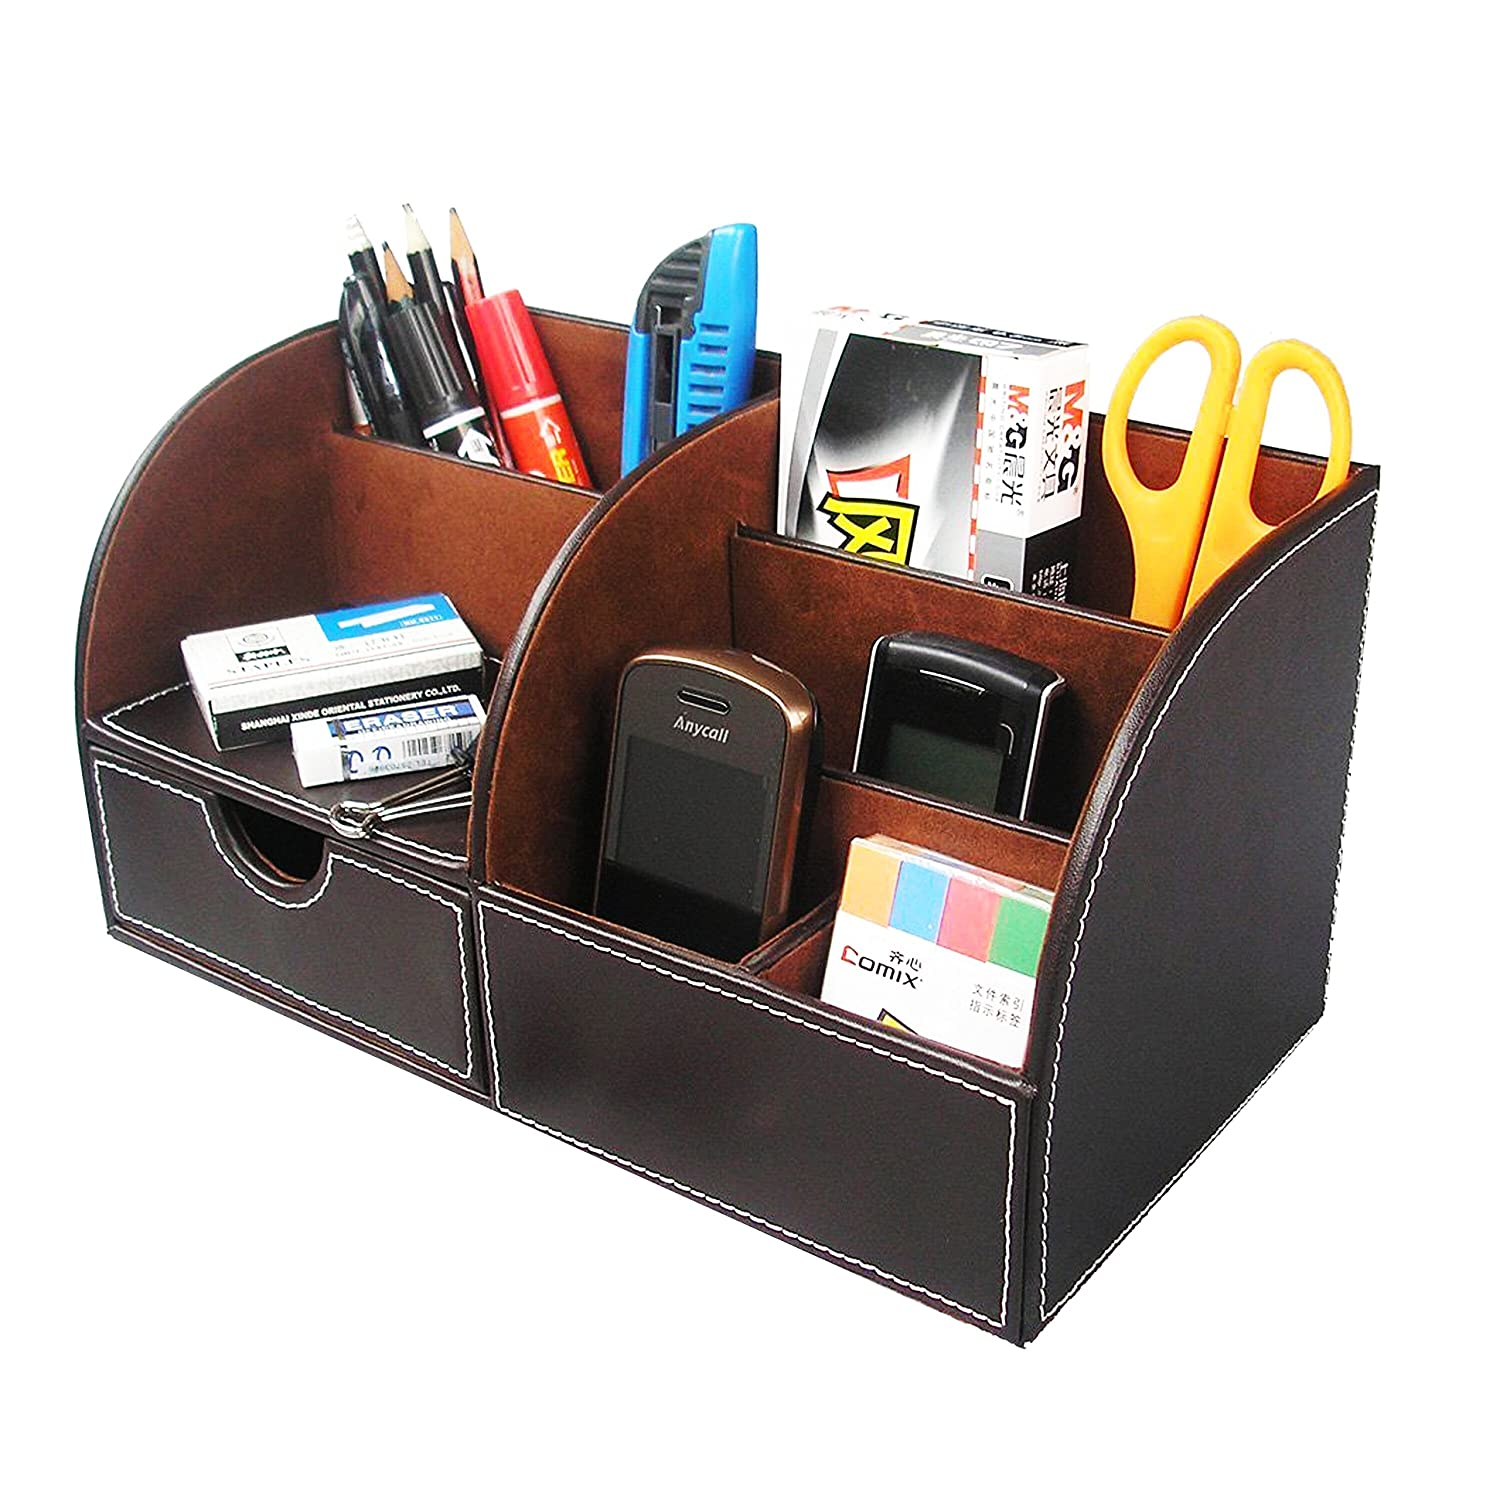 HOMETEK™ 7 Storage Compartment Multifunctional PU Leather Desk Organizer Desktop Organizer Card/Pen/Pencil/Mobile Phone/Remote Control Holder Caddy Office Supplies Desktop Stationery Storage Box (Brown)